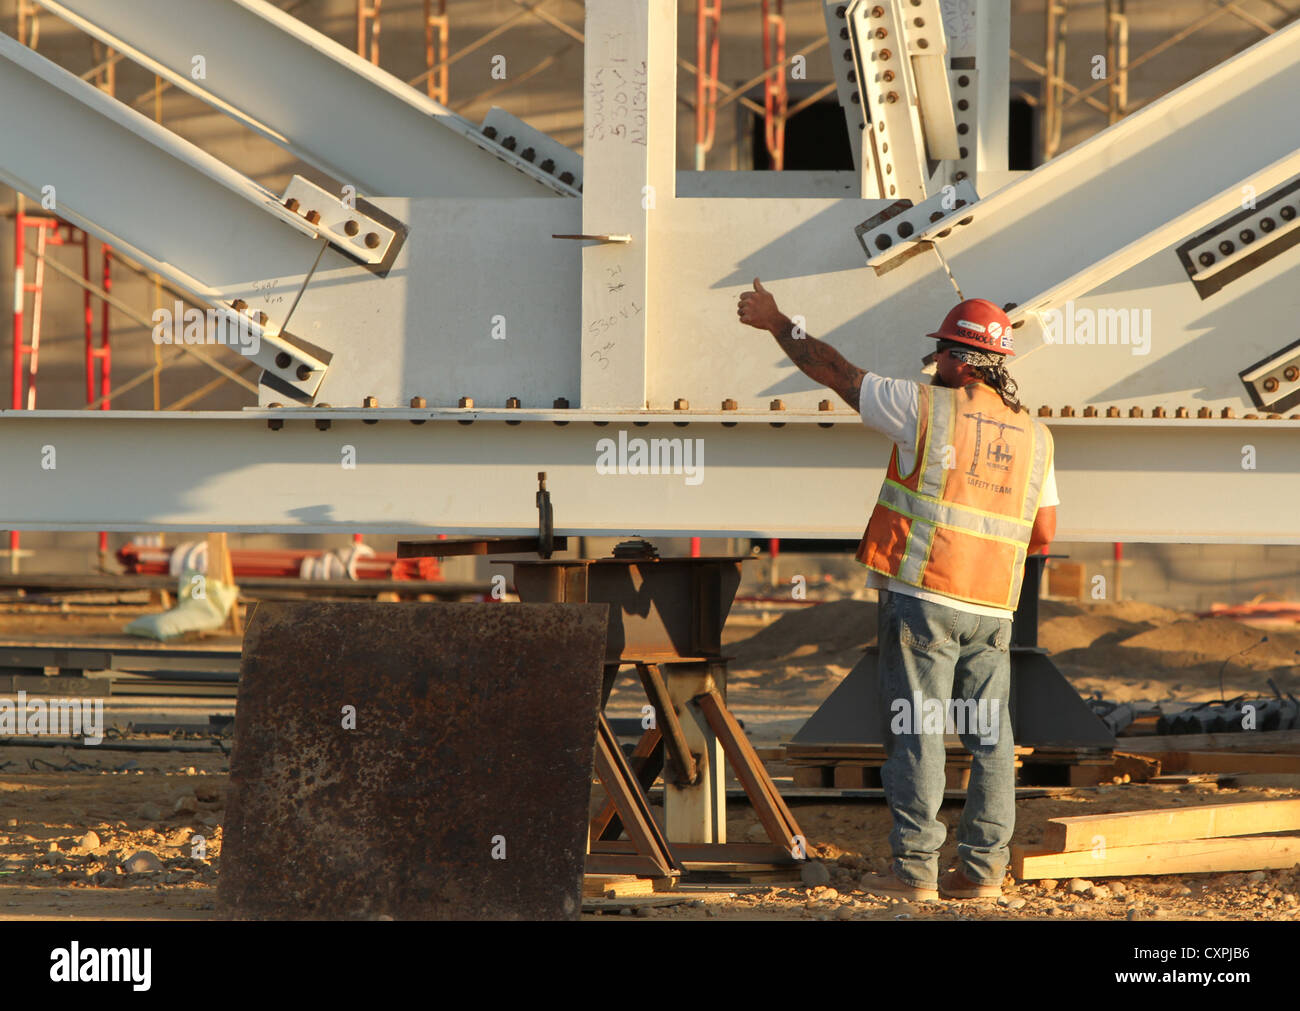 A construction worker guides one of two cranes preparing to lift a 335,000 pound box truss during the construction - Stock Image